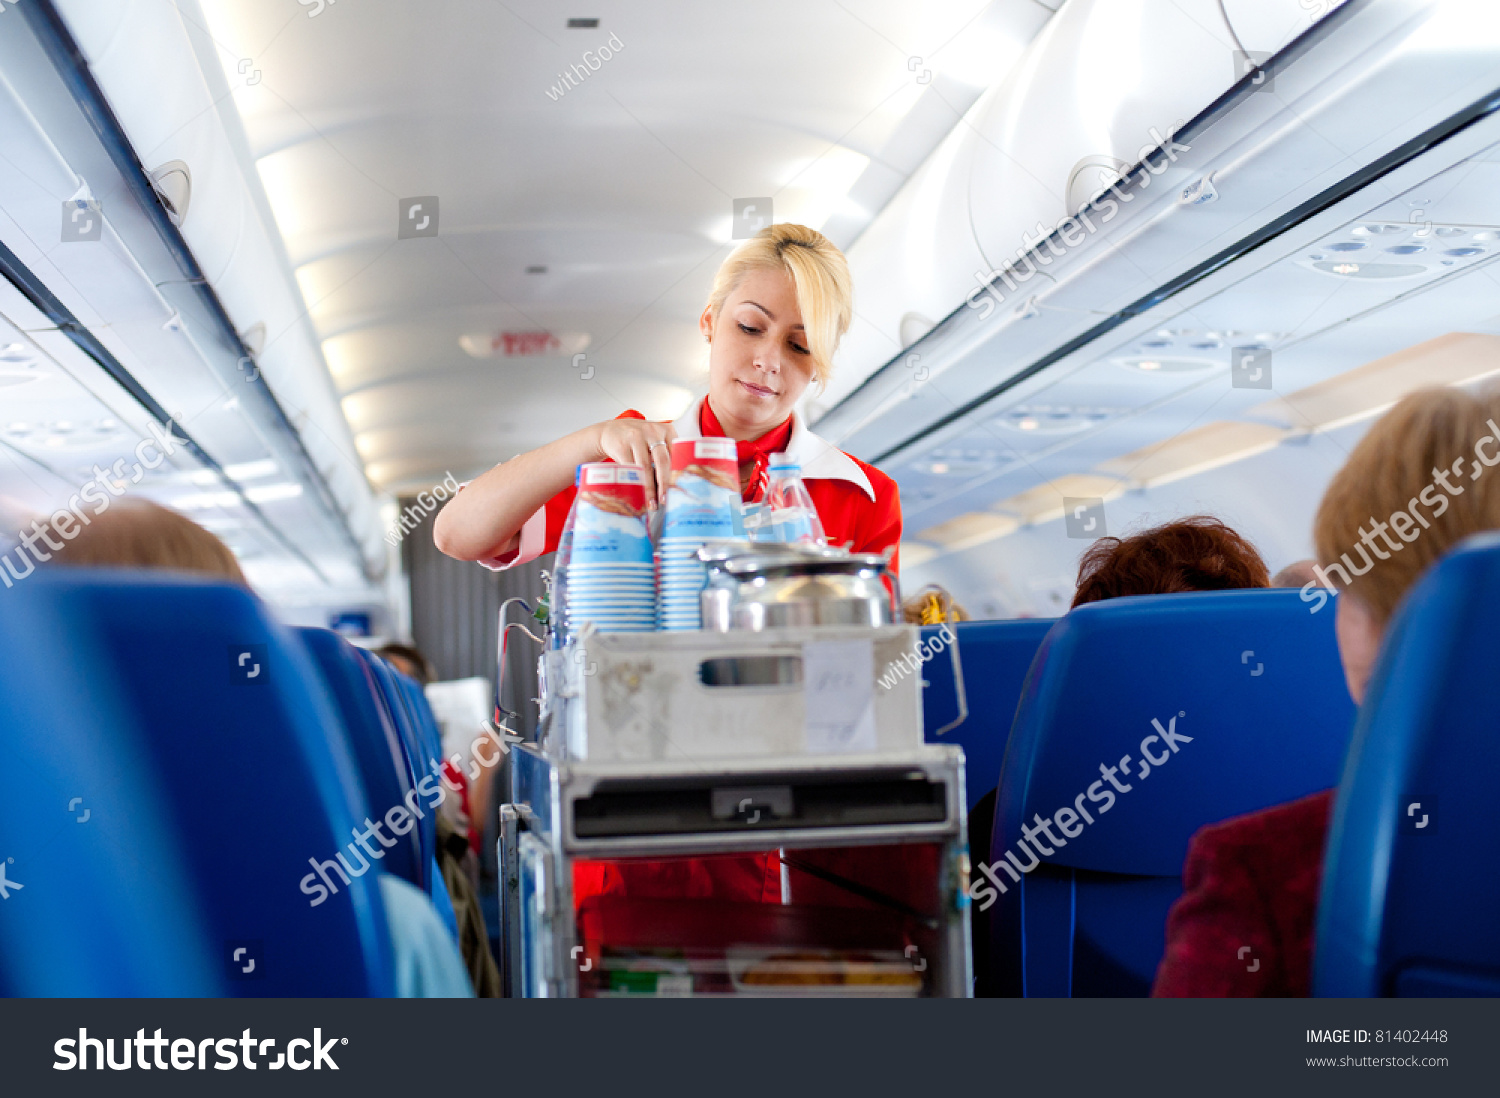 Air hostess helps out 10